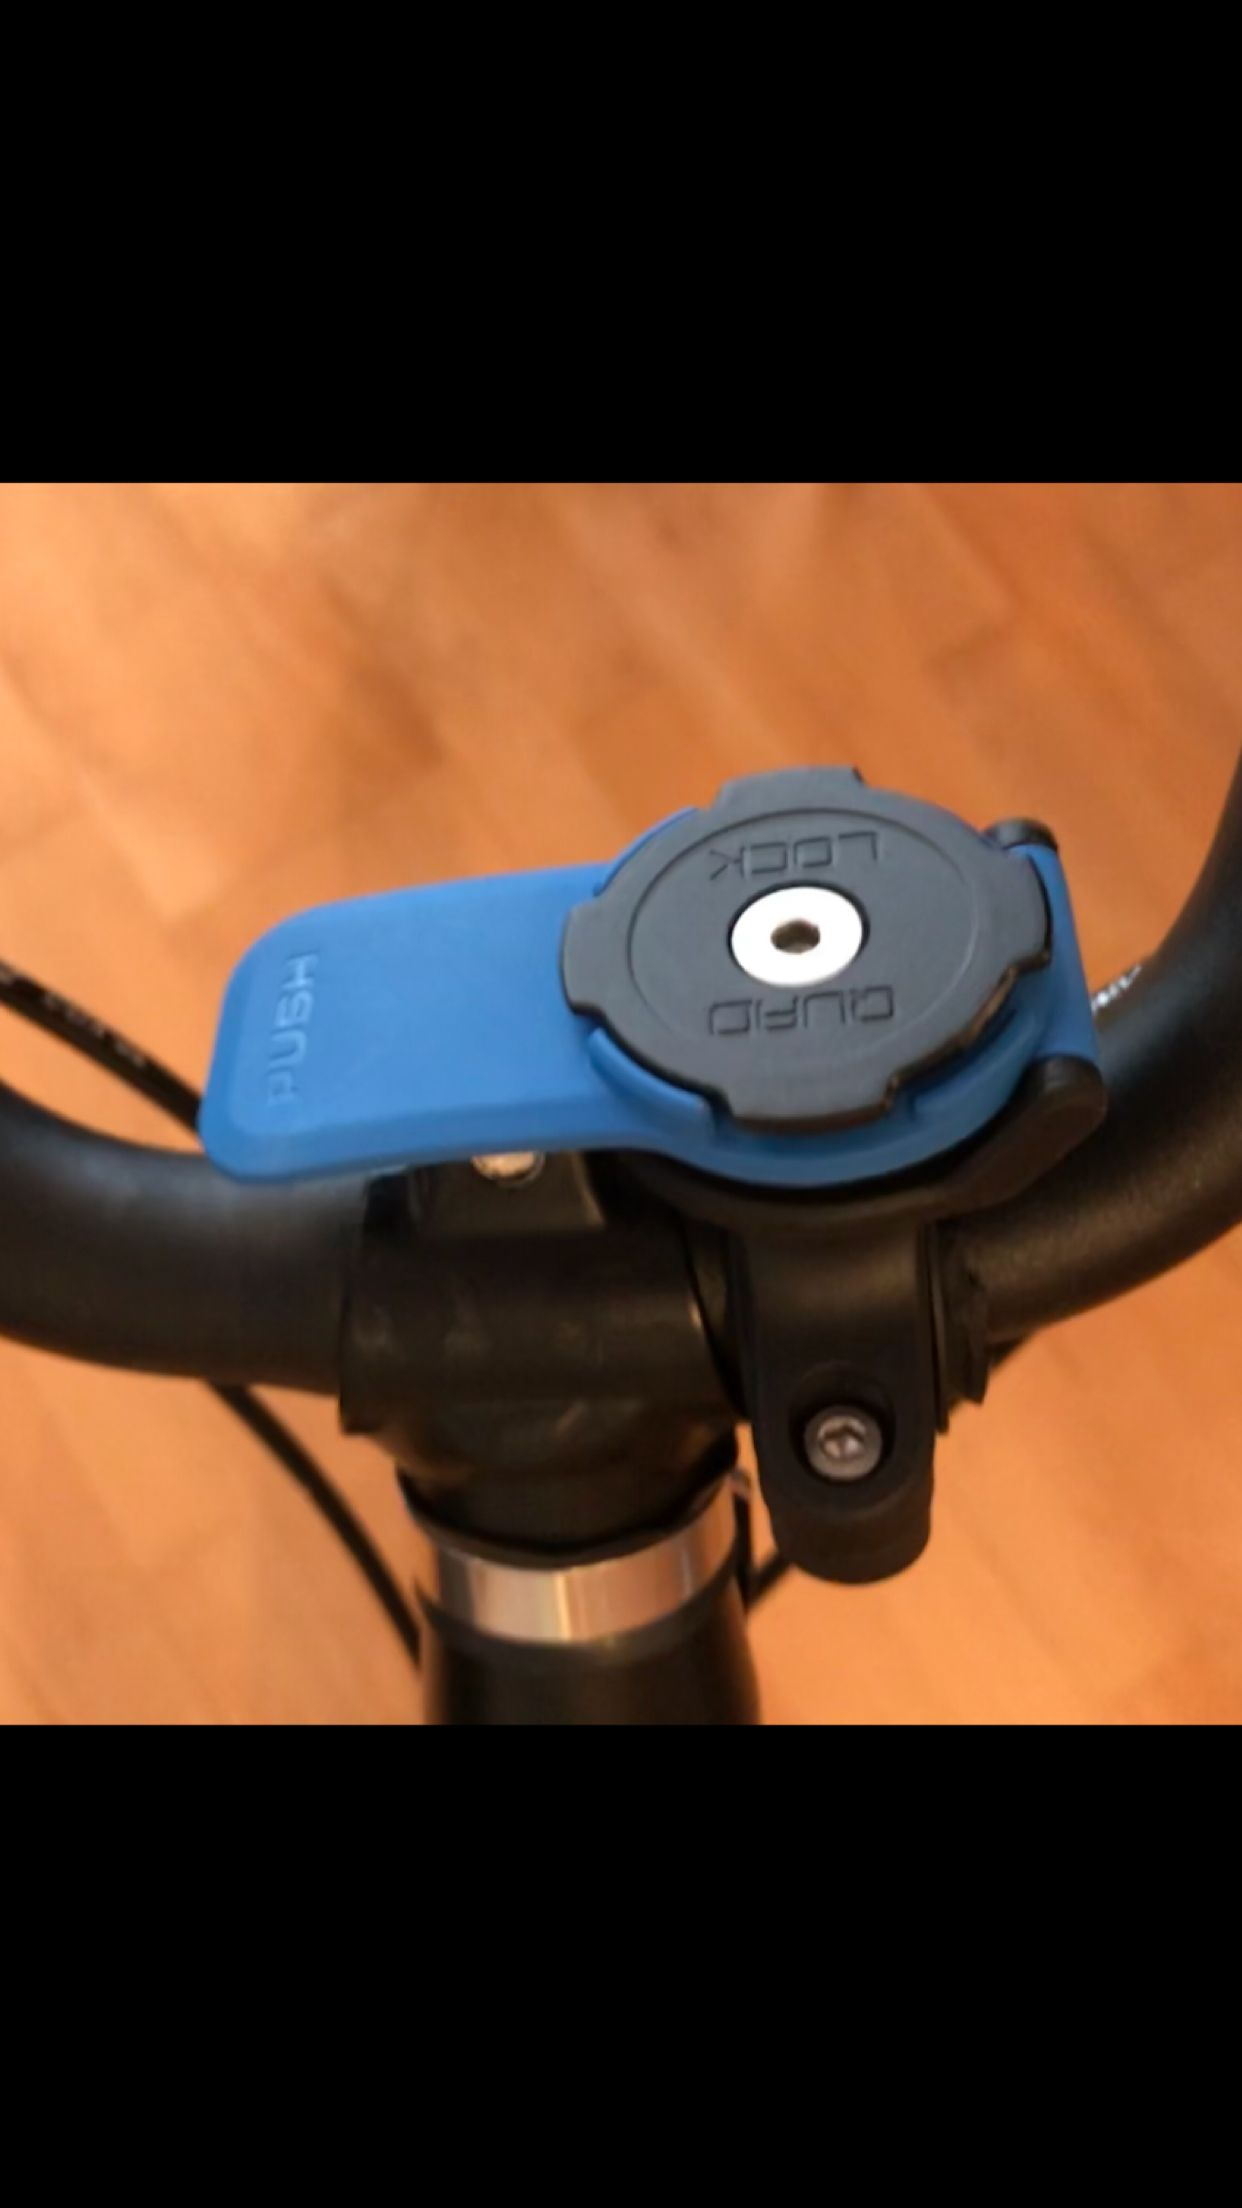 Quad Lock Smartphone Mount For Motorcycles On A Brompton Folding